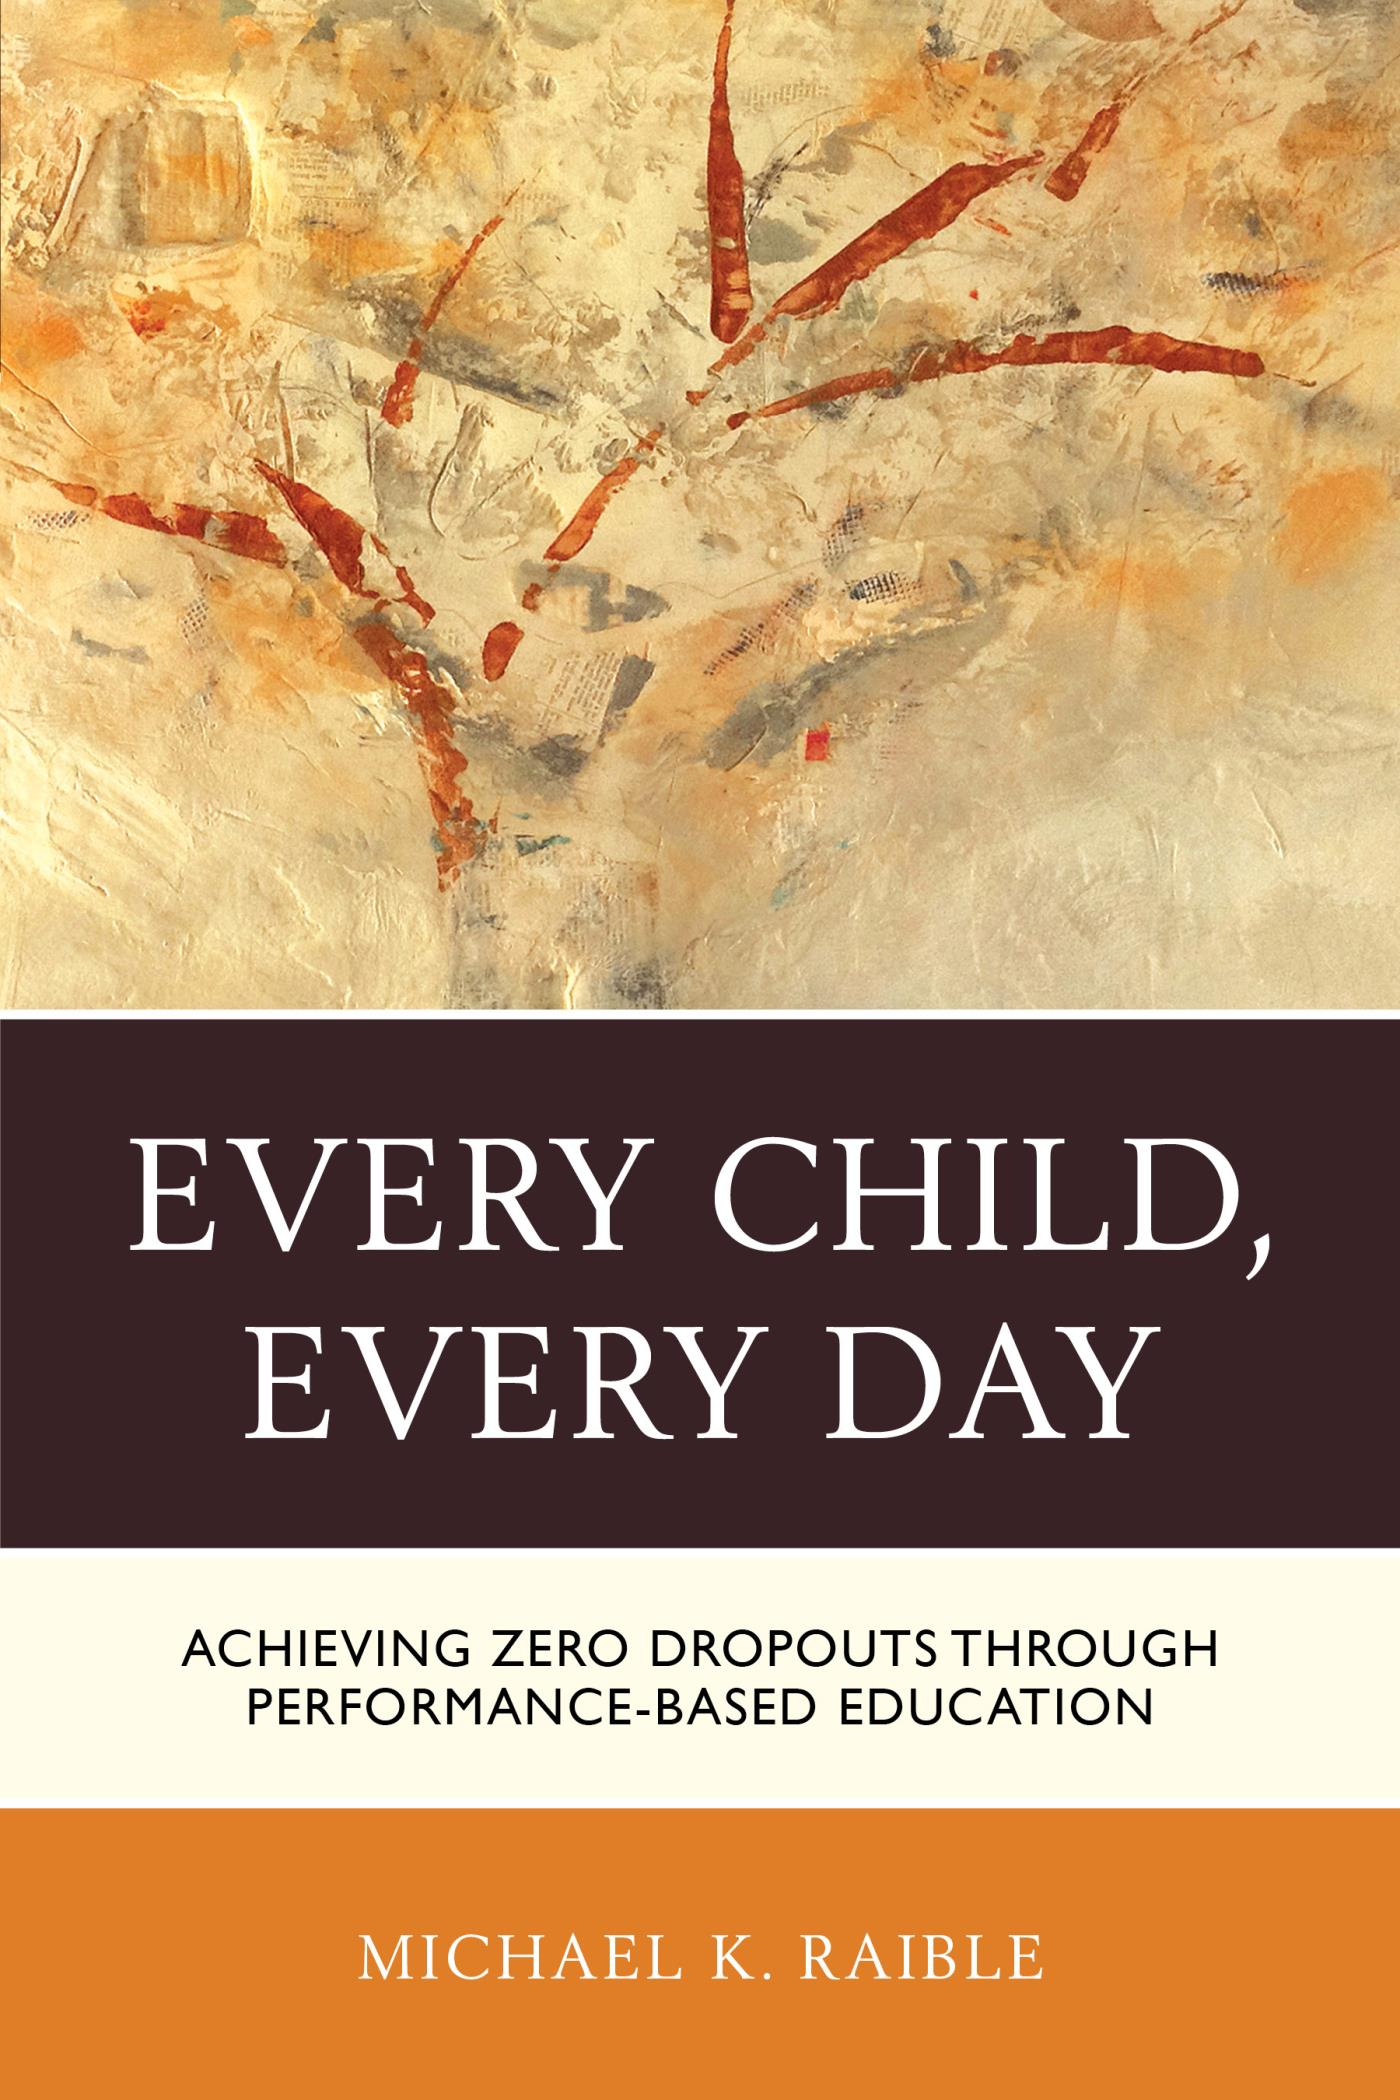 Every Child, Every Day